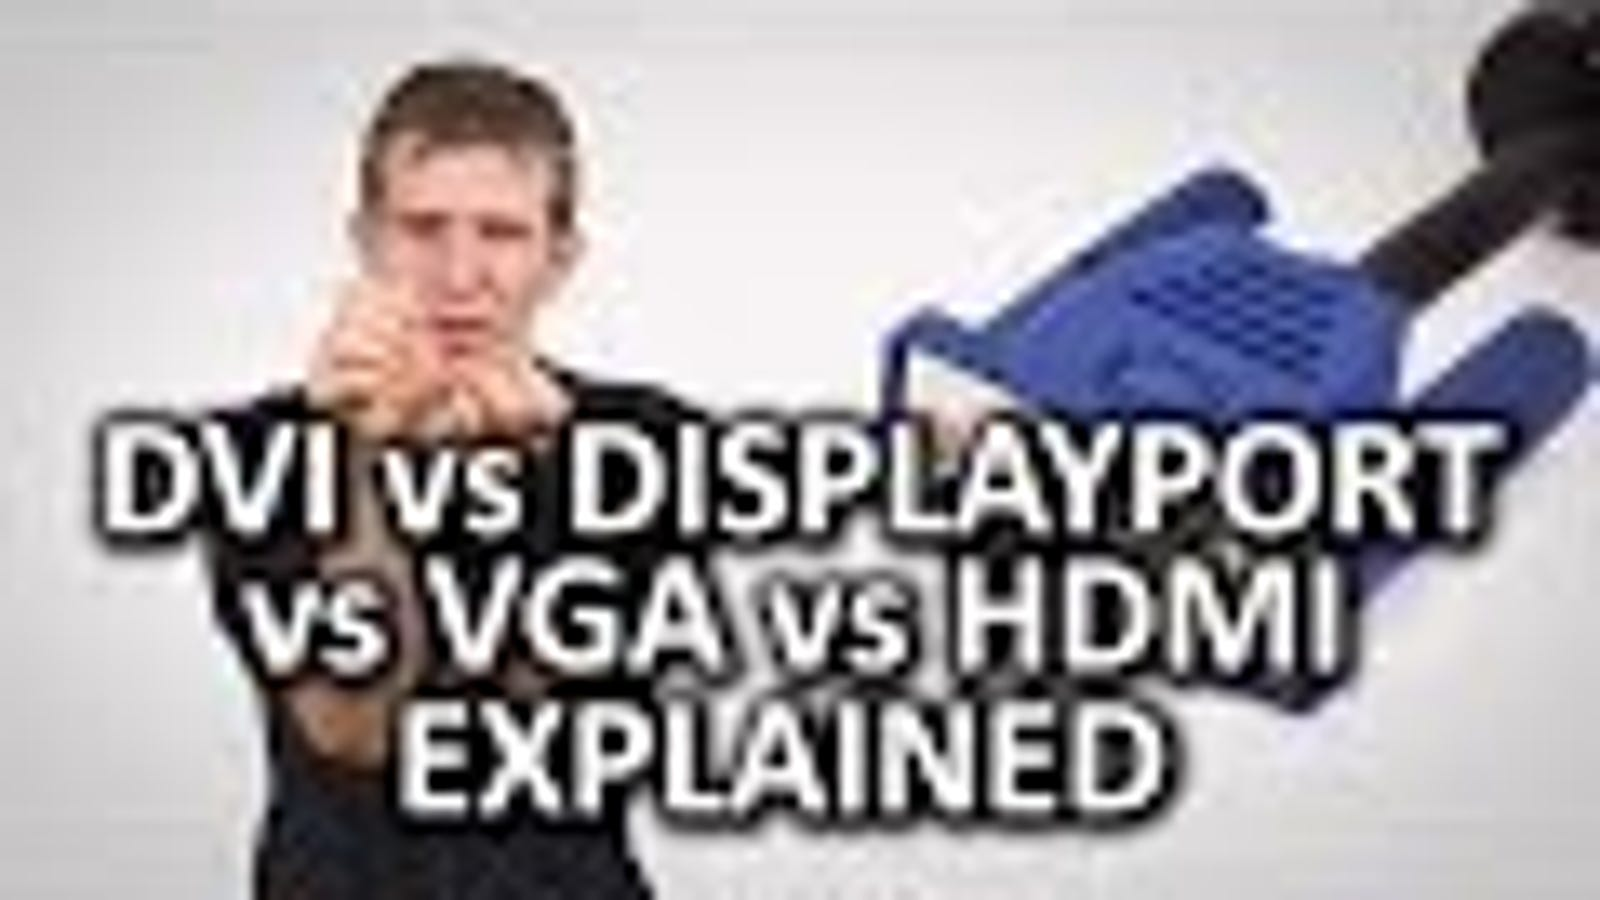 This Video Explains the Pros and Cons of Different Display